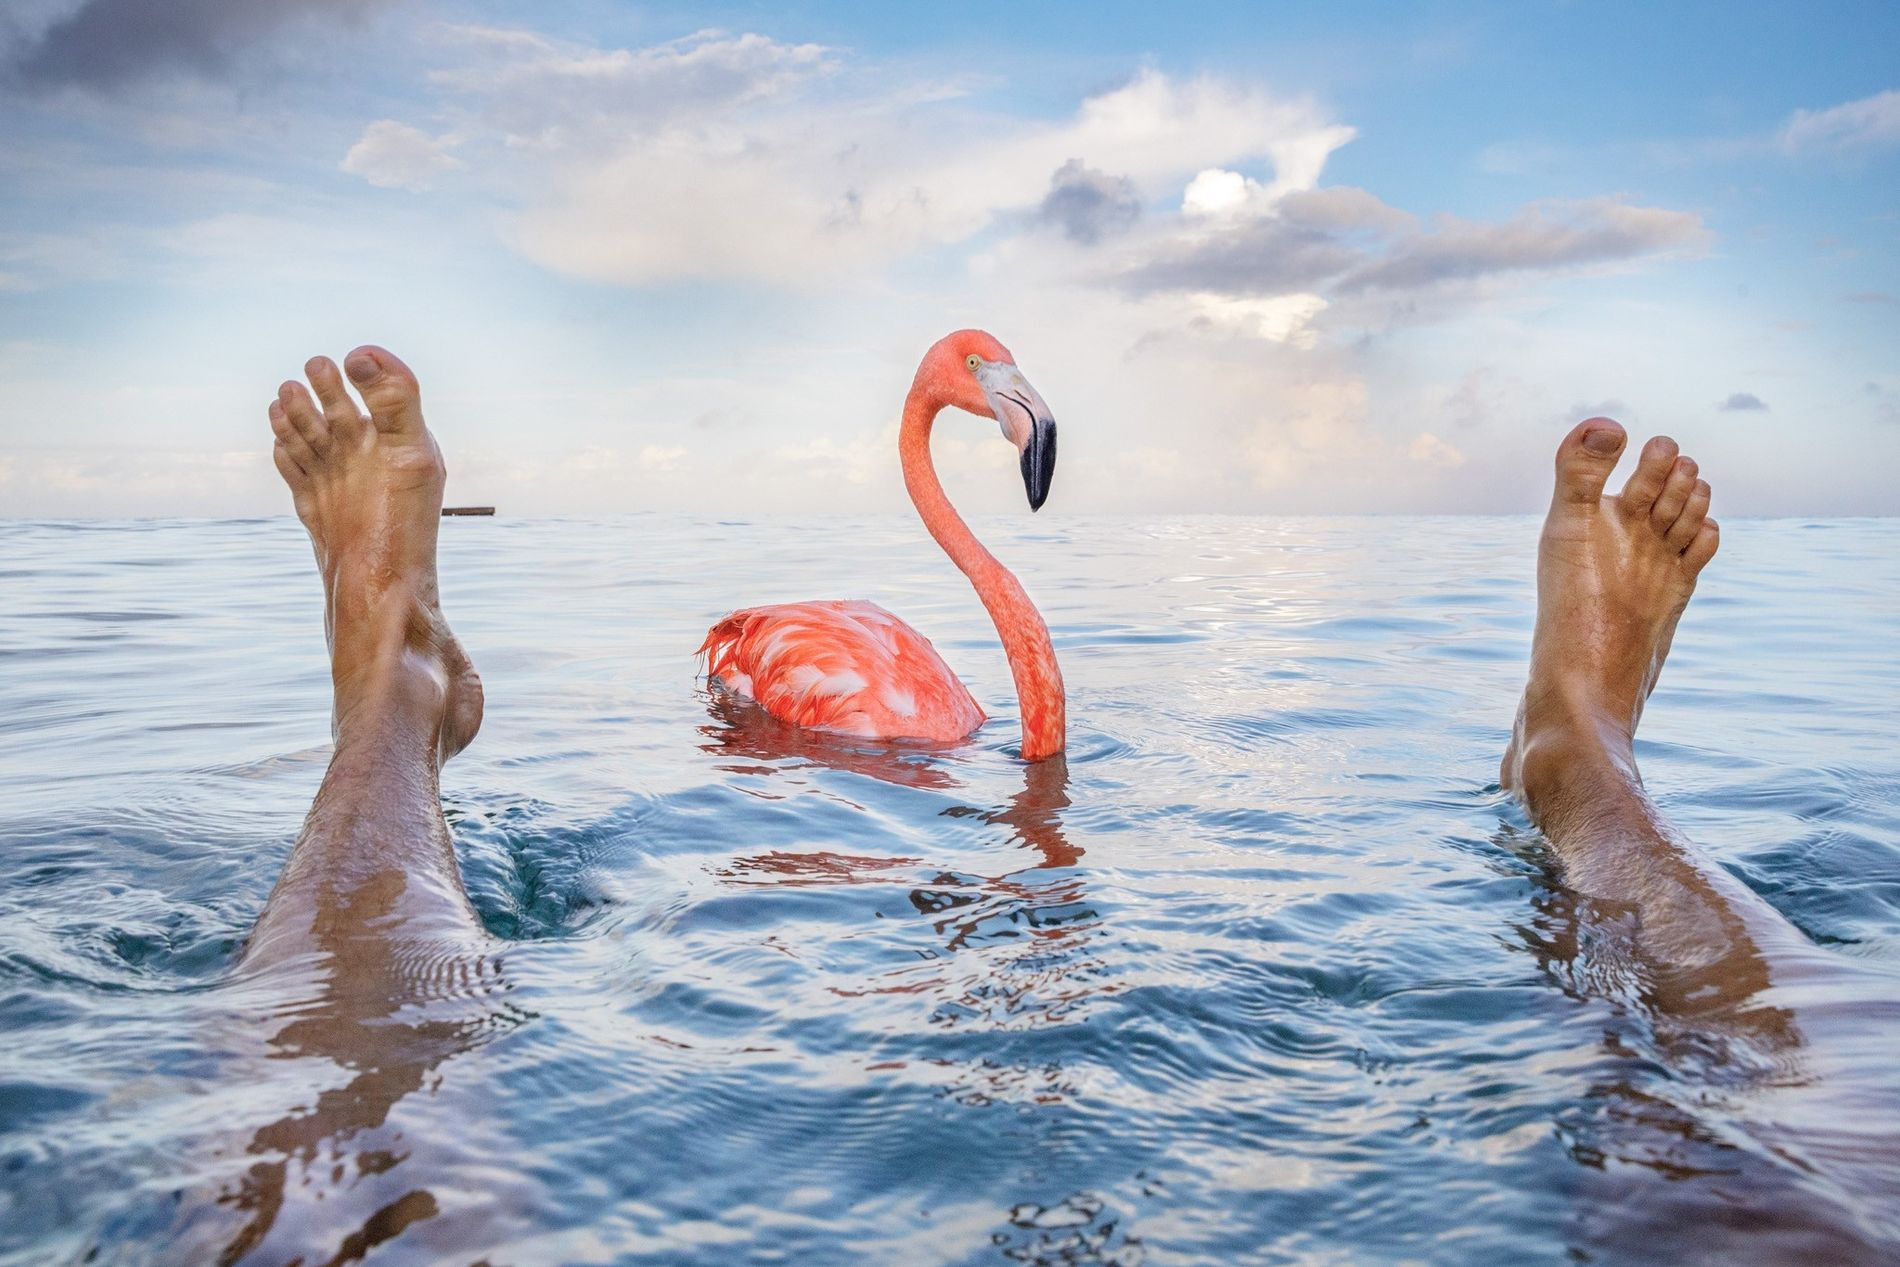 Photographer Jasper Doest, Odette's cousin, swims with Bob in the Caribbean Sea.